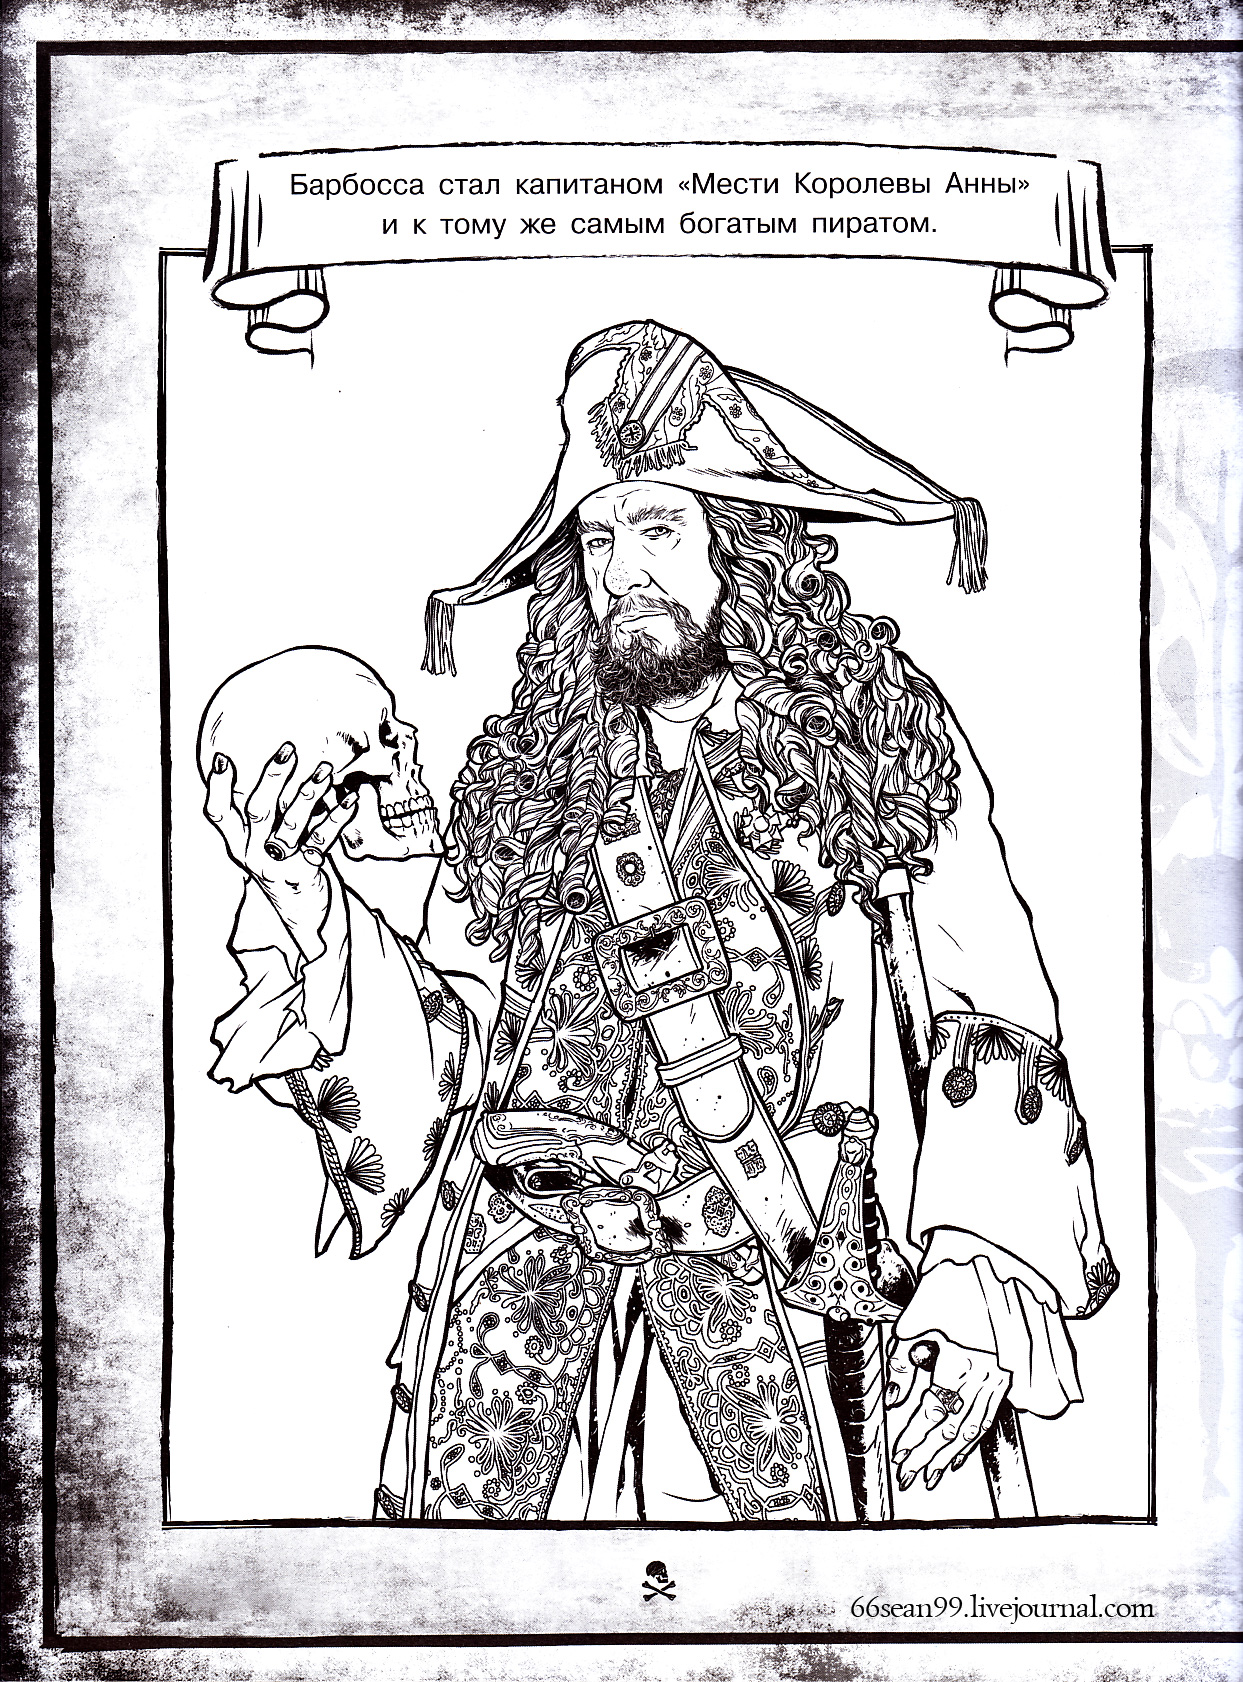 pirates of the caribbean 5 coloring captain barbossa - Pirates Of The Caribbean Coloring Pages